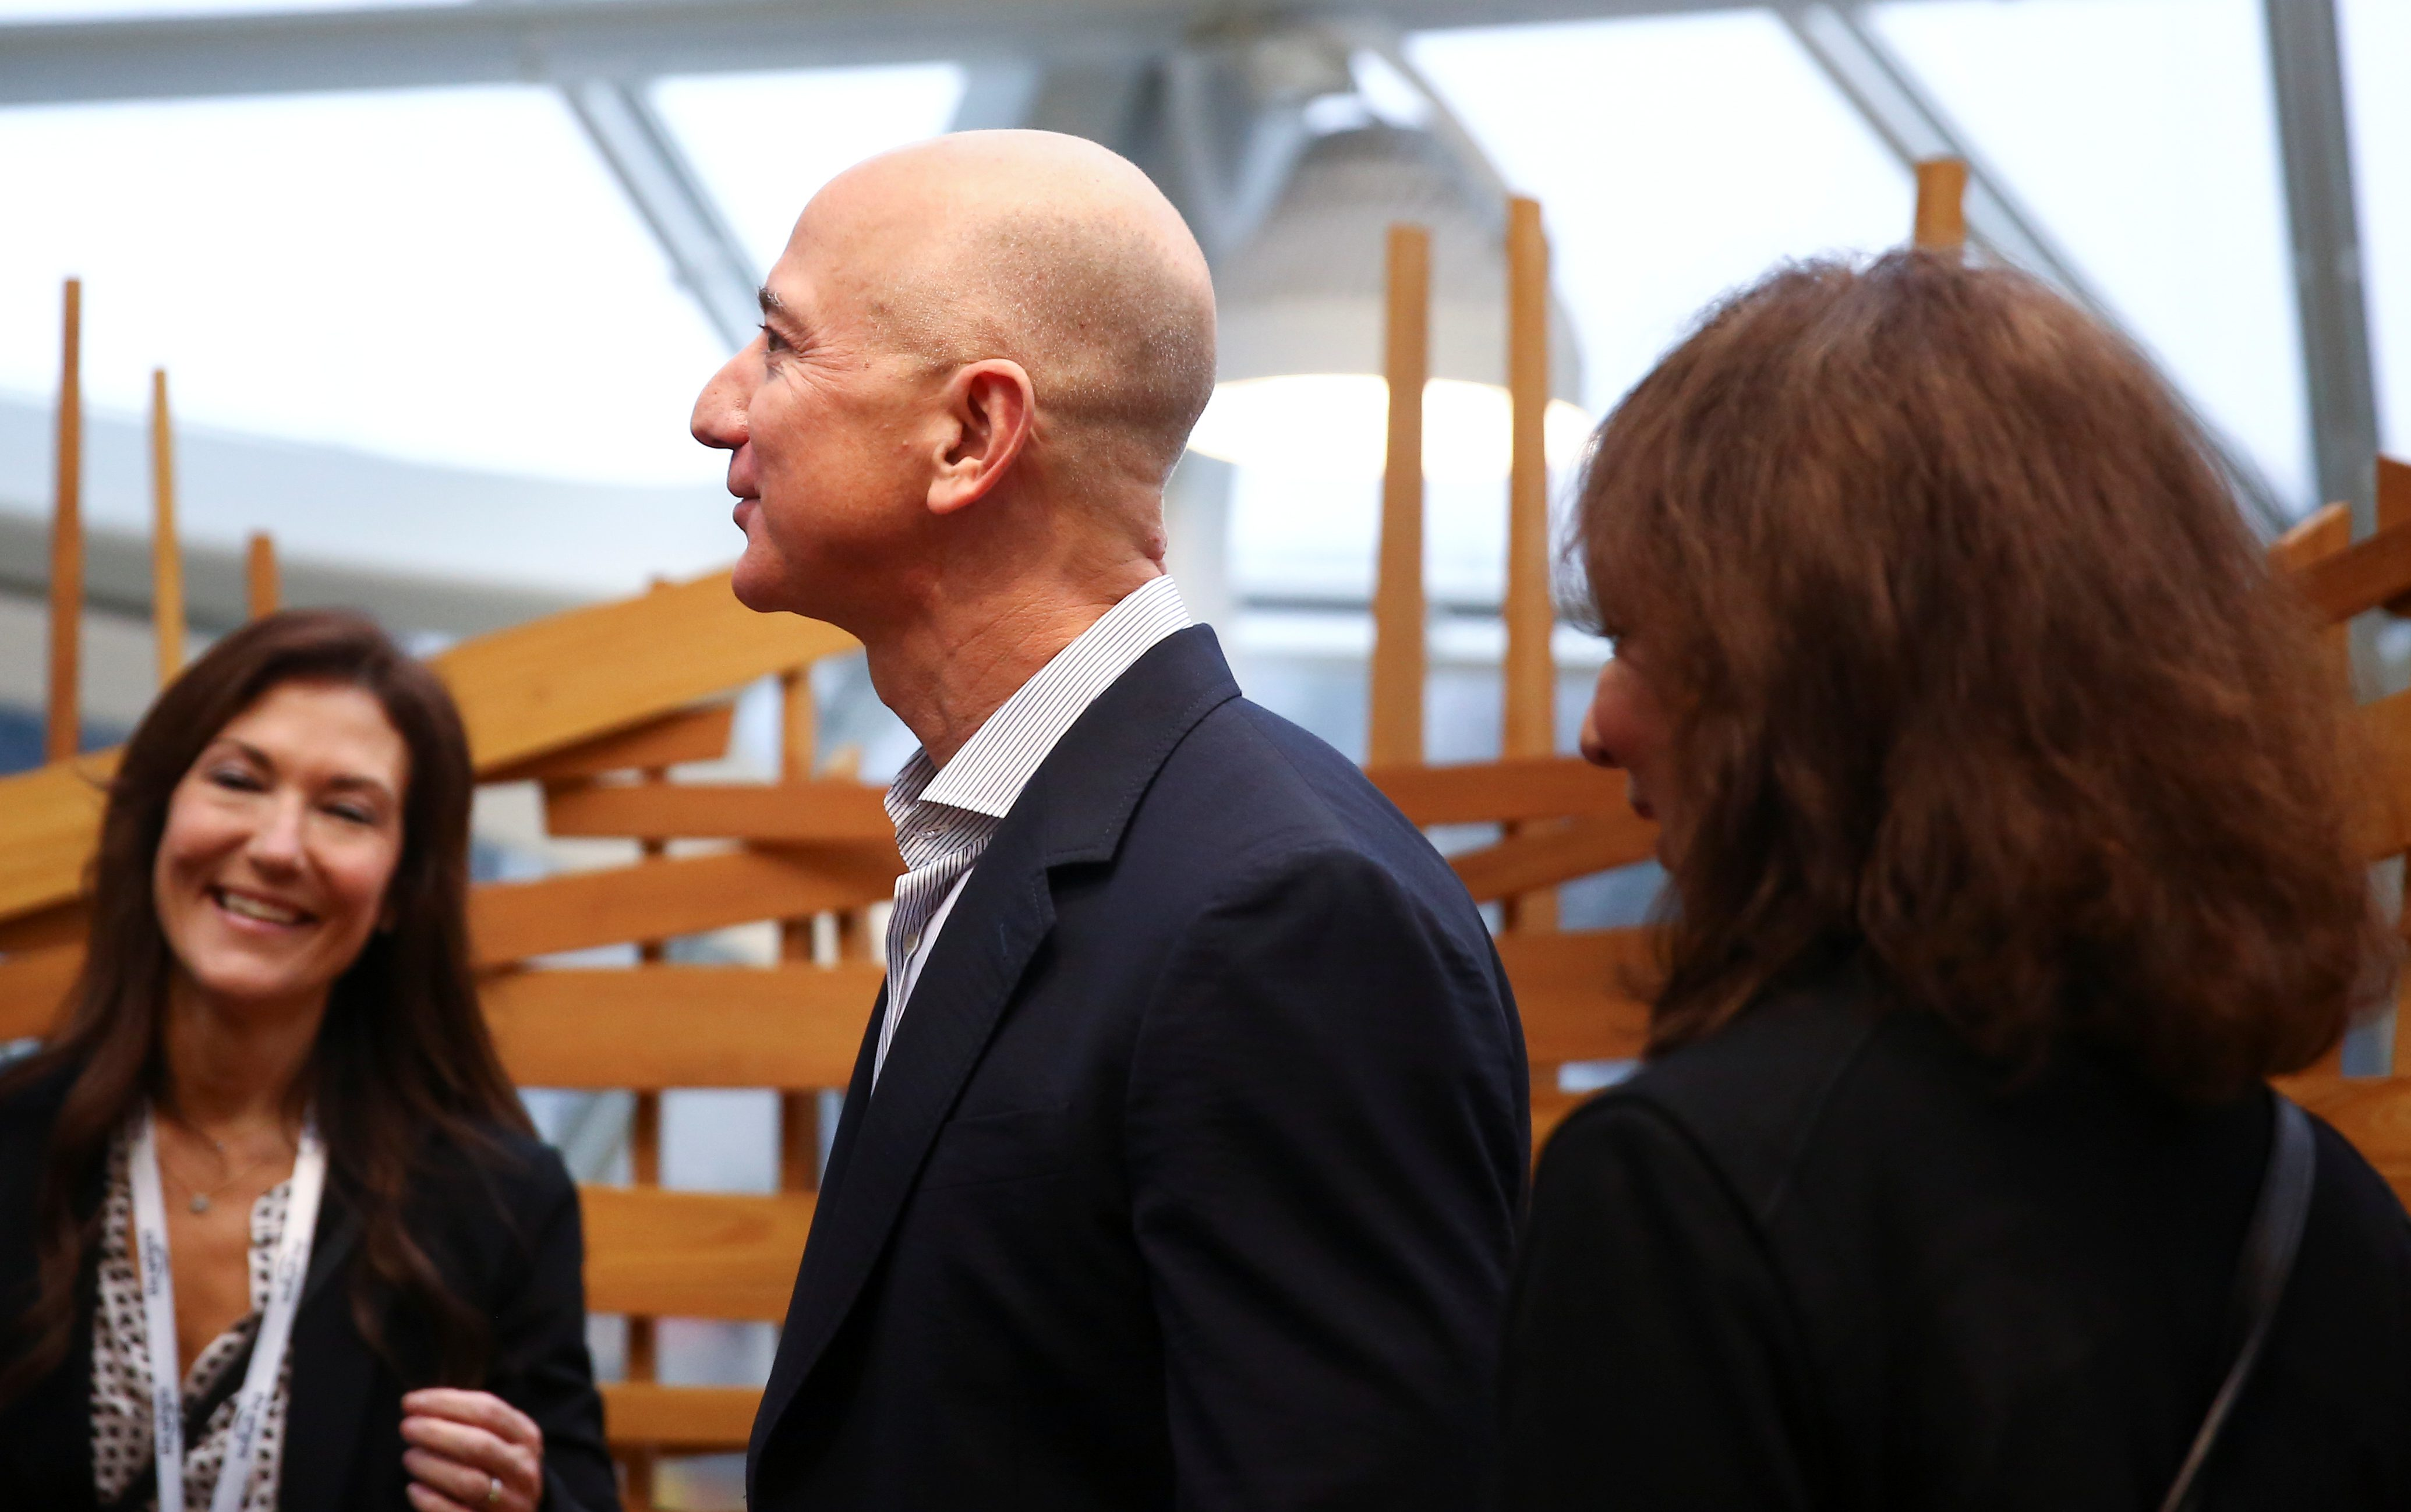 """Amazon founder and CEO Jeff Bezos stands in the """"bird cage"""" structure as he gets a tour of the new Amazon Spheres opening event at Amazon's Seattle headquarters in Seattle, Washington, U.S., January 29, 2018.   REUTERS/Lindsey Wasson - RC1B2FD49C40"""